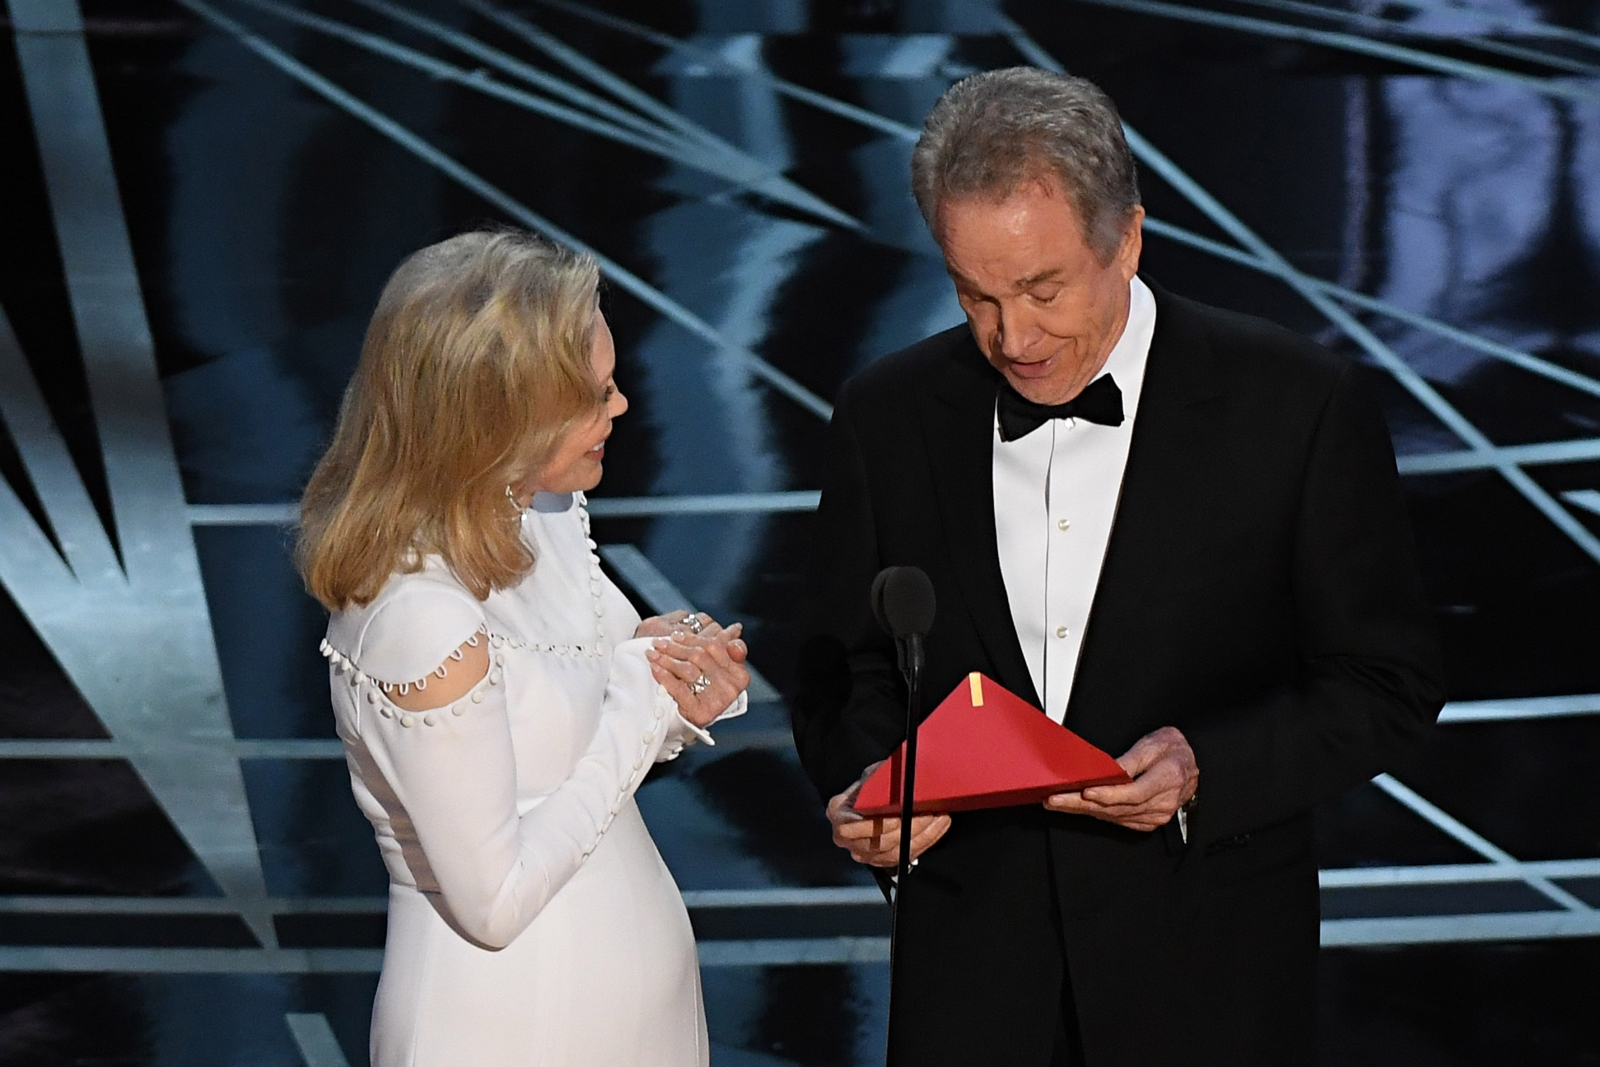 Faye Dunaway, Warren Beatty to present Oscars best picture again, report says